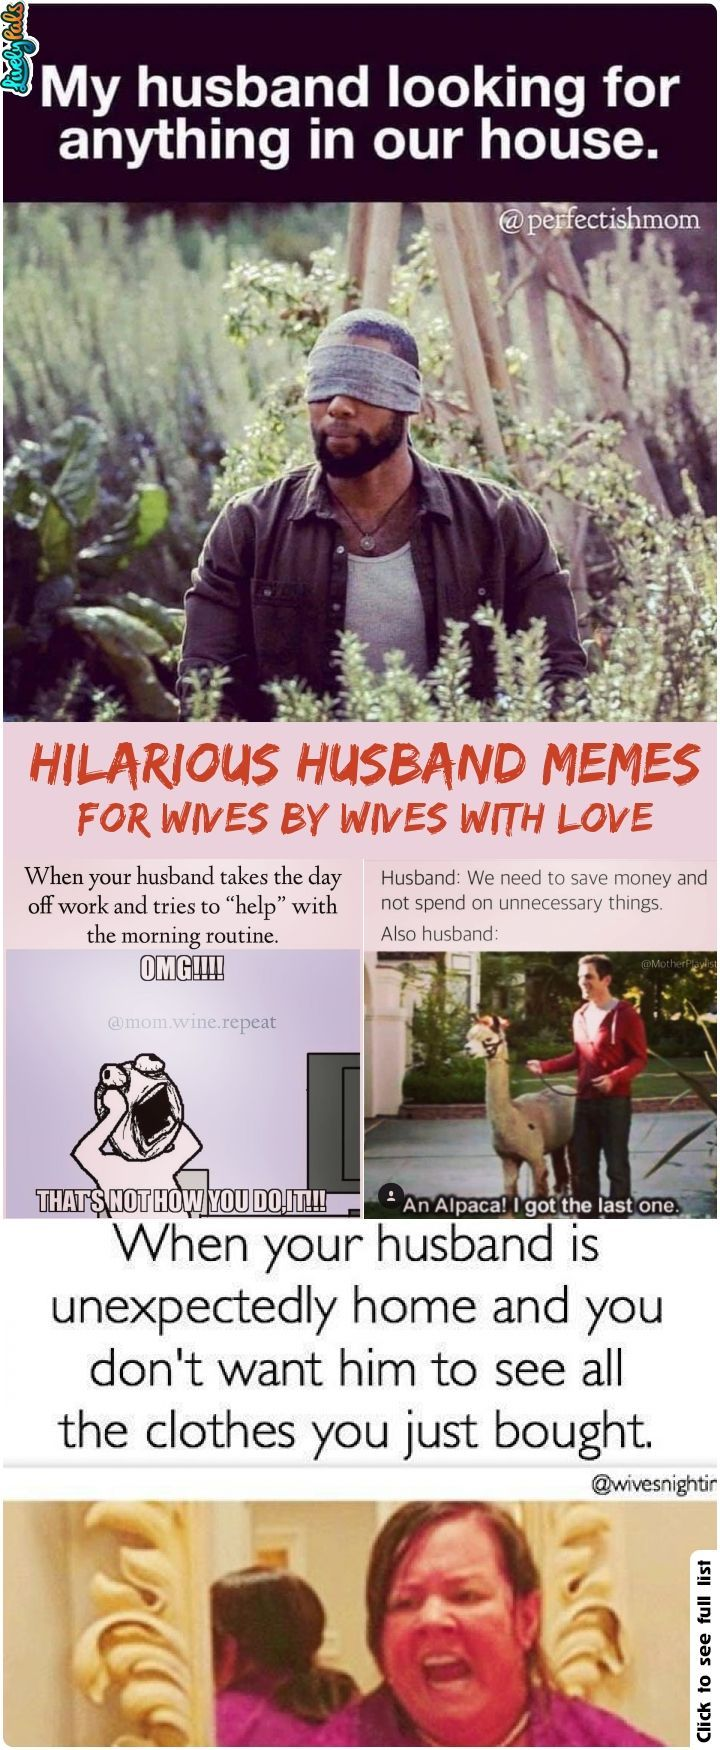 25 Extremely Hilarious Husband Memes That Are Actually Relatable Memes Husbands Men Wives Funnymemes Feelings In Husband Meme Husband Humor Men Are Dumb